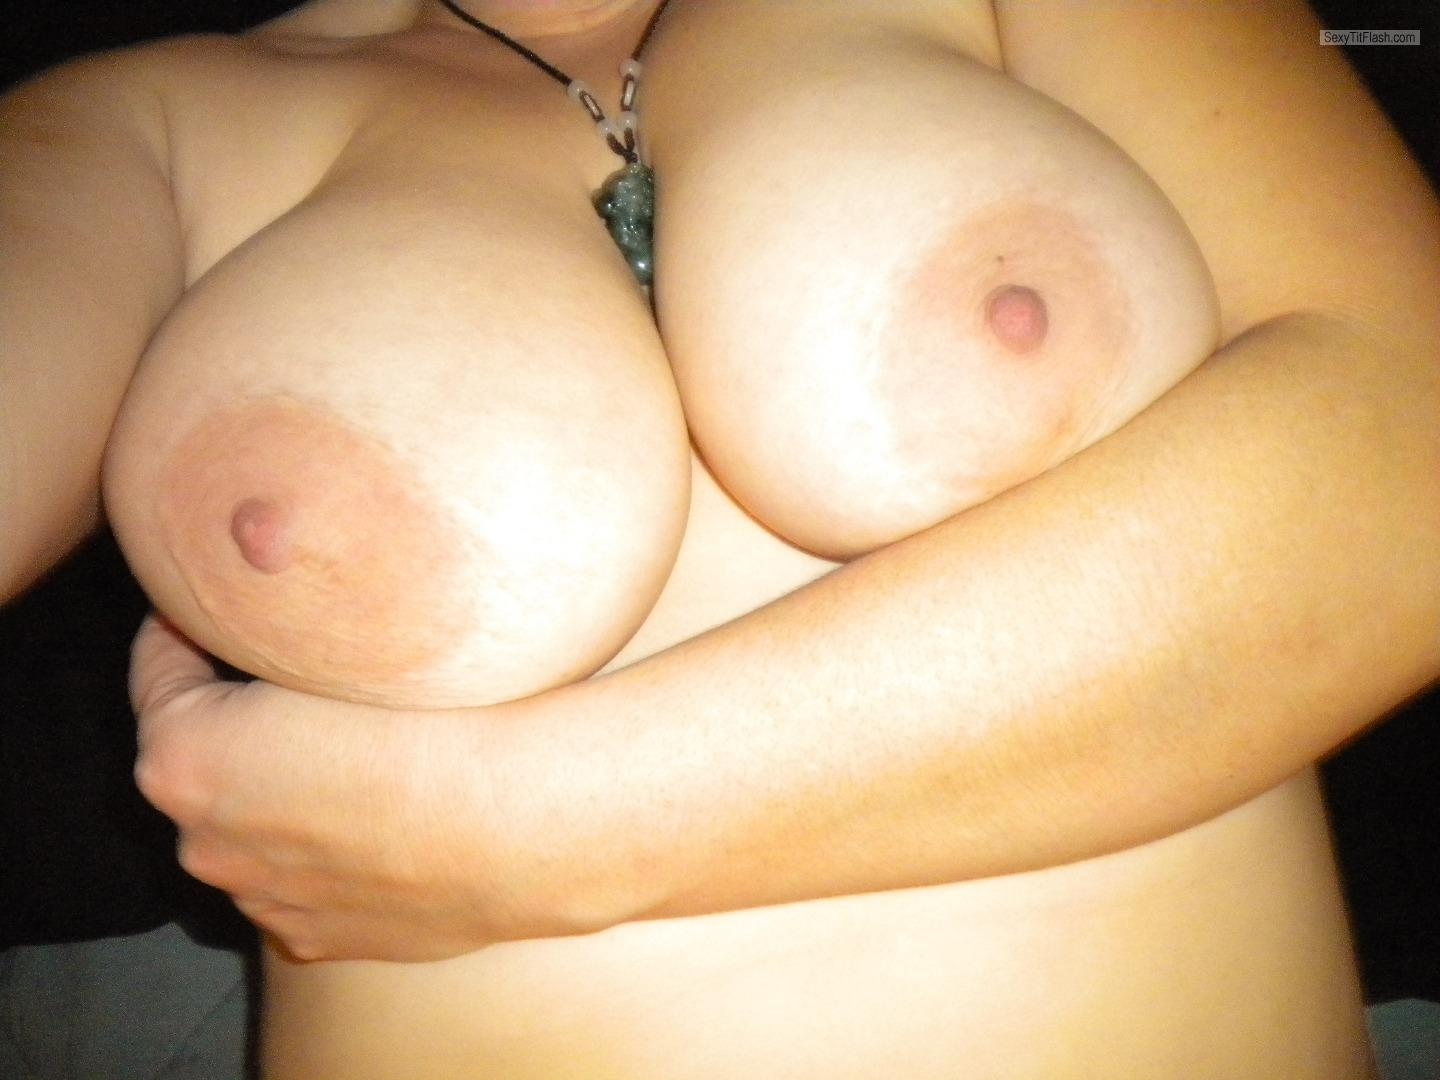 Big Tits Of My Ex-Girlfriend Selfie by Jess